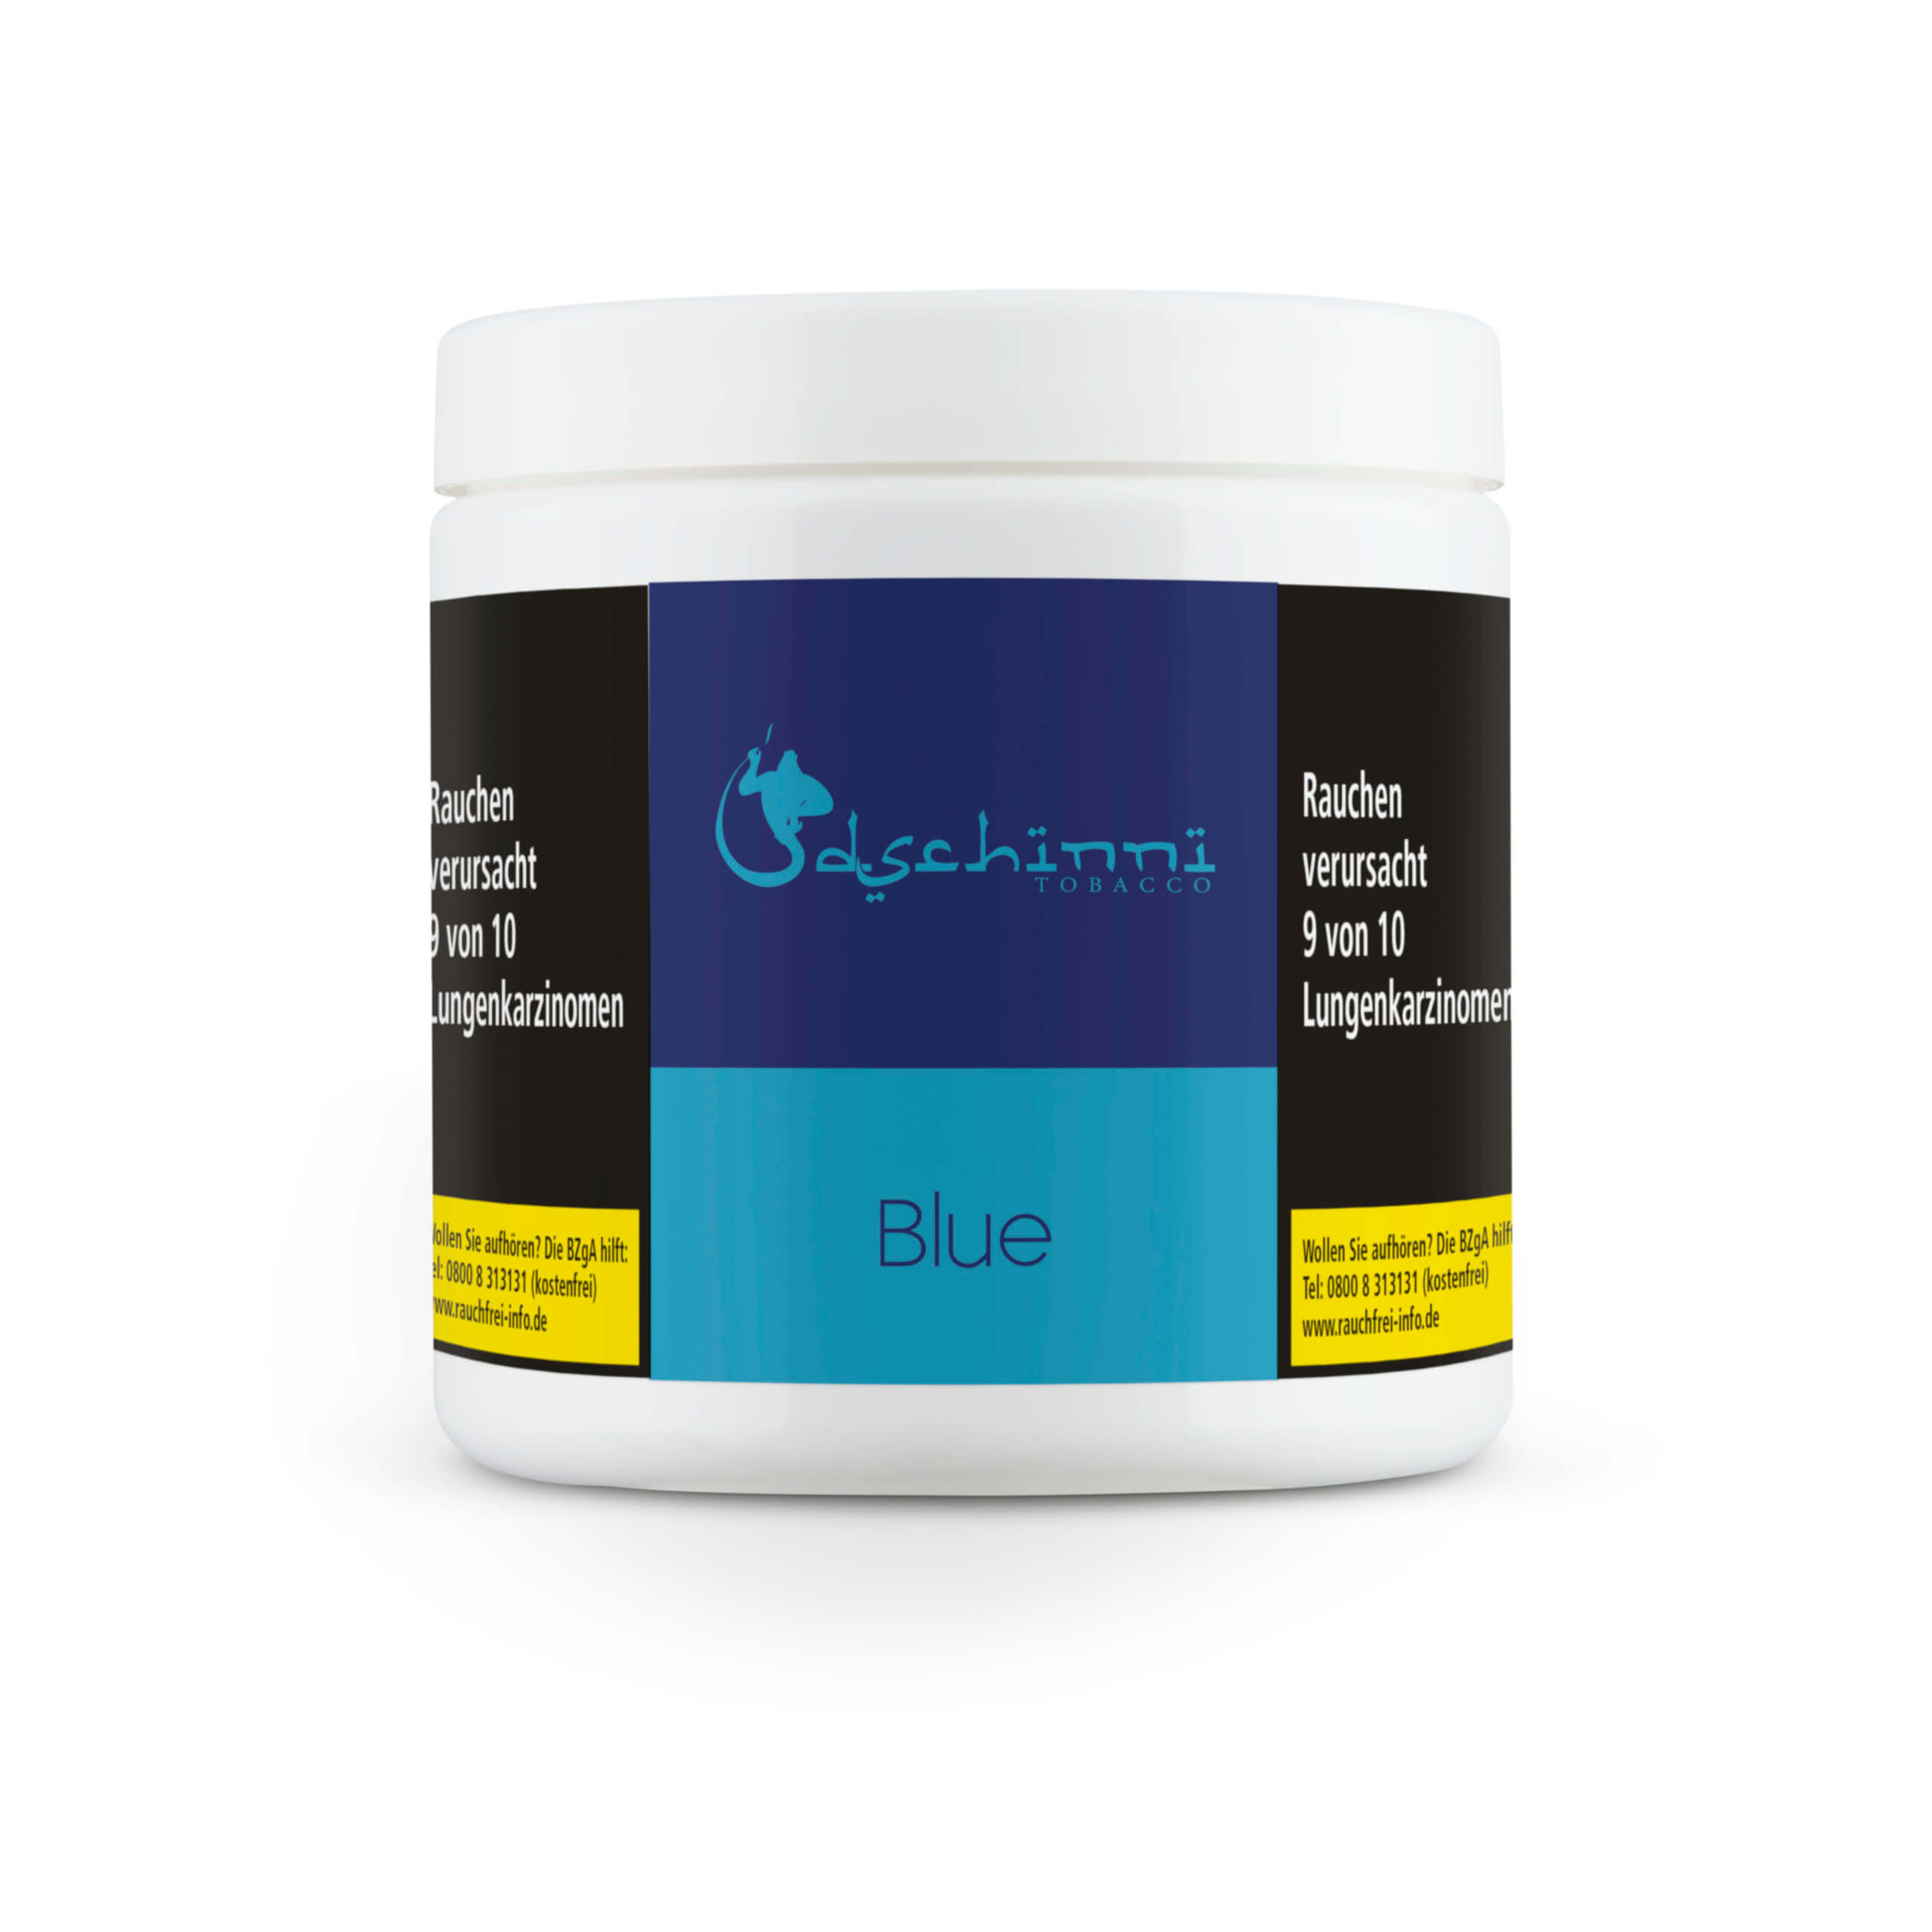 Dschinni Blue 200g